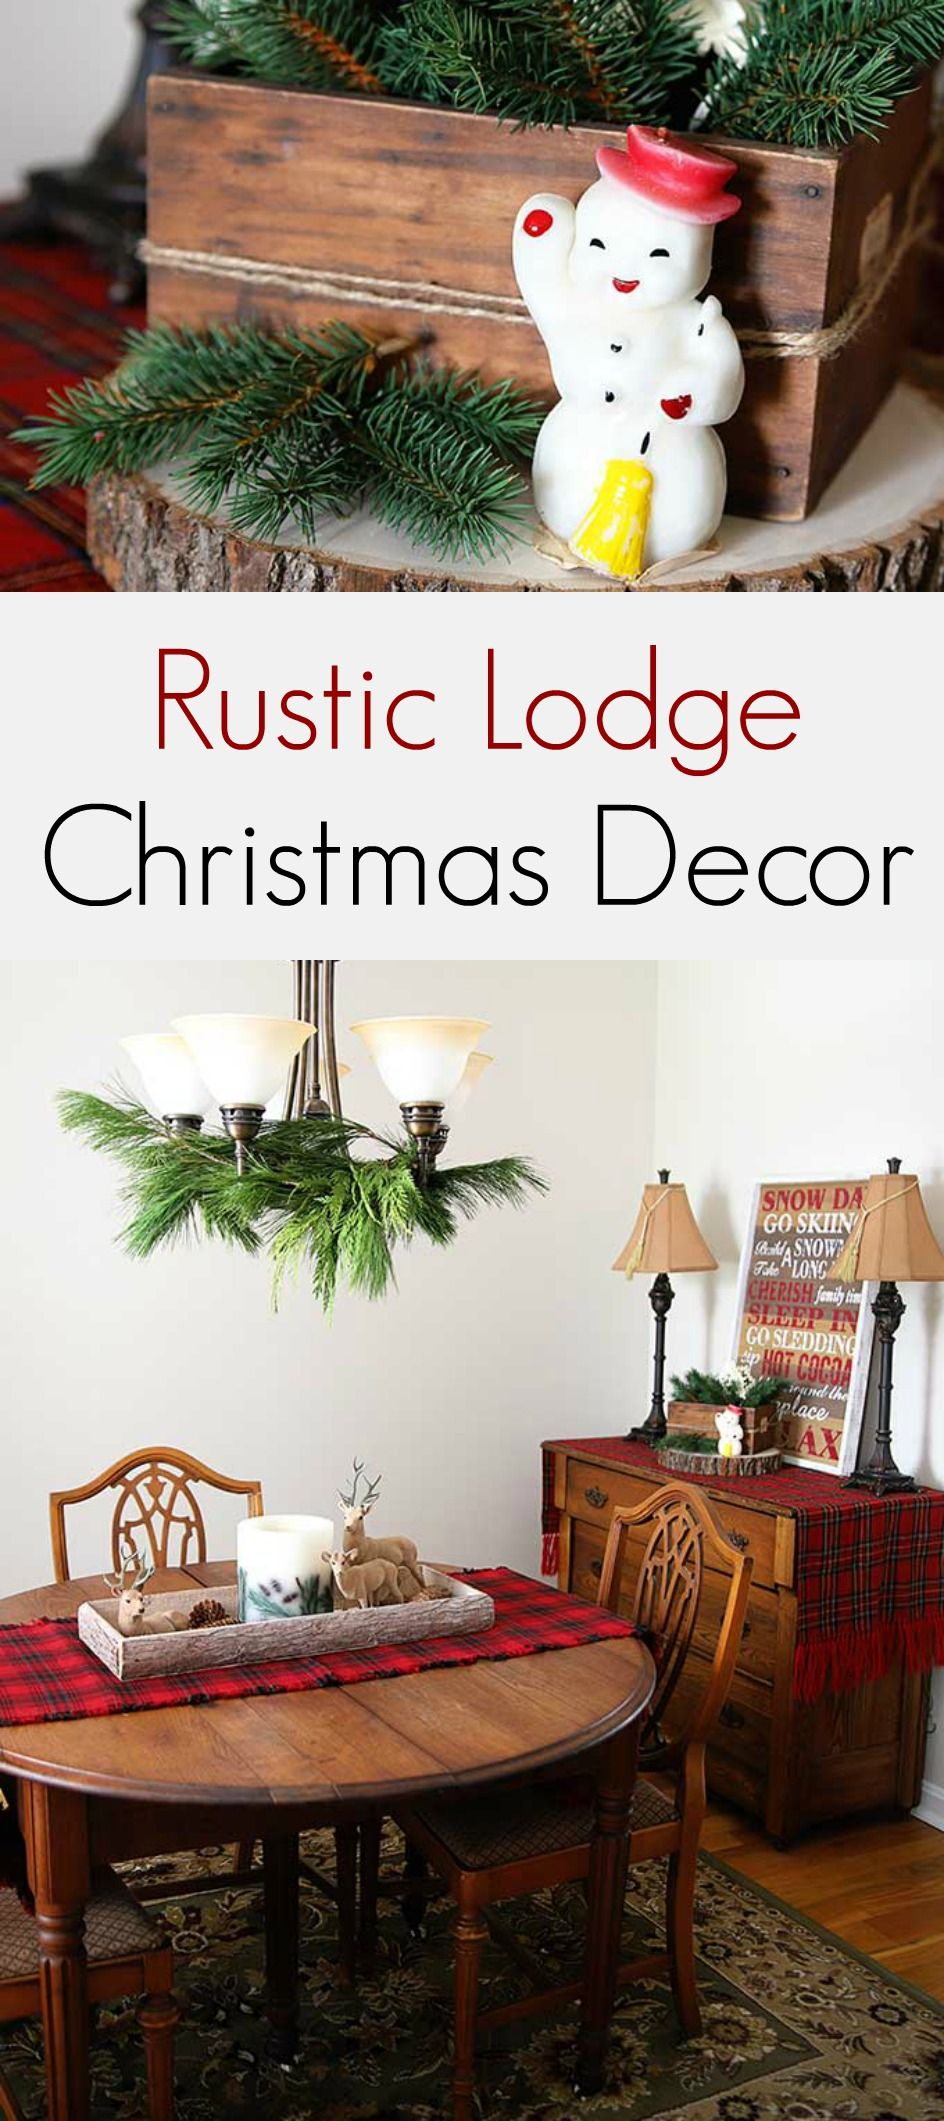 Enjoy a warm and cozy lodge look for the holidays using vintage rustic Christmas decorations. Including plaid decor, wooden accents and vintage reindeer. #VintageChristmas #rusticdecor #RusticChristmas #cabinchristmas #cabindecor #lodgedecor #holidaydecor